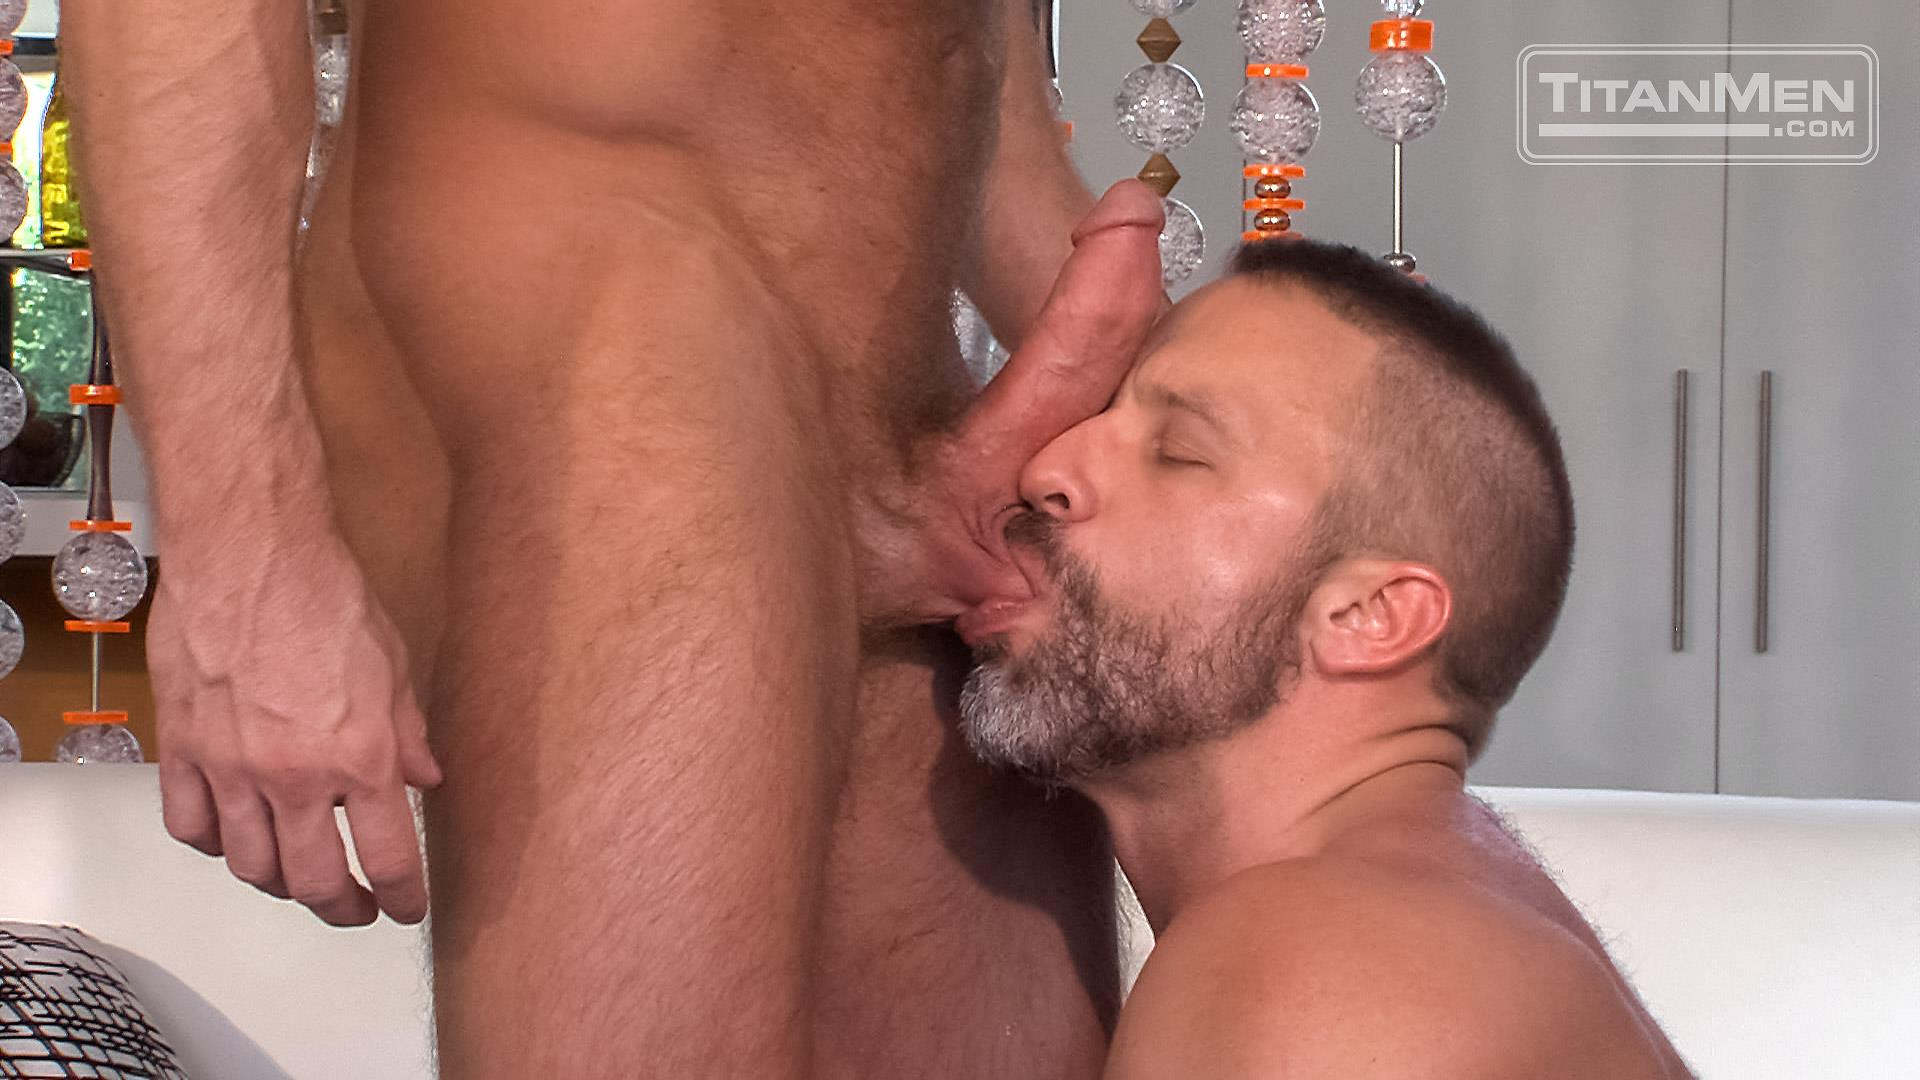 Eating amateur straight boy cjs cum load 10